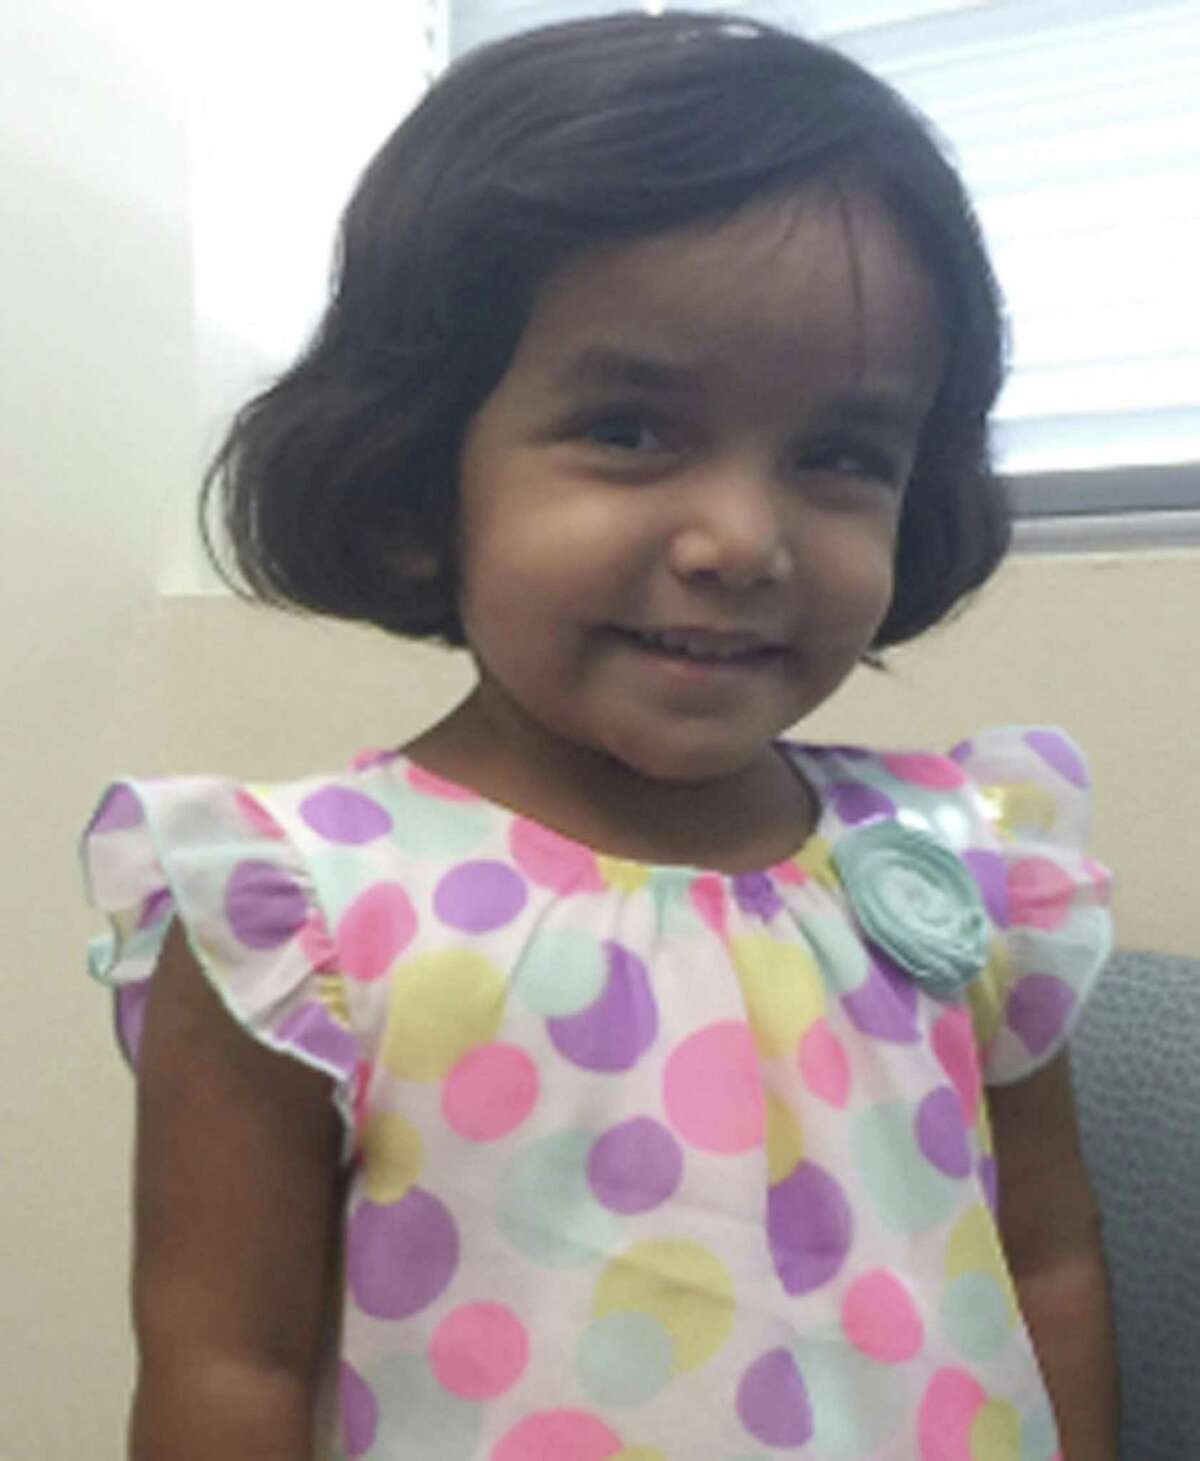 FILE- This undated photo provided by the Richardson Texas Police Department shows 3-year-old Sherin Mathews. Police in a Dallas suburb say they've found the body of a small child on Sunday, Oct. 22, 2017, not far from the home of Sherin Mathews, who's been missing since early this month. Her father, Wesley Mathews, has told authorities he ordered the child to stand next to a tree behind the fence at their home around 3 a.m. on Oct. 7 as punishment for not drinking her milk and she went missing. Police say the body hasn't been positively identified. (Richardson Texas Police Department via AP)